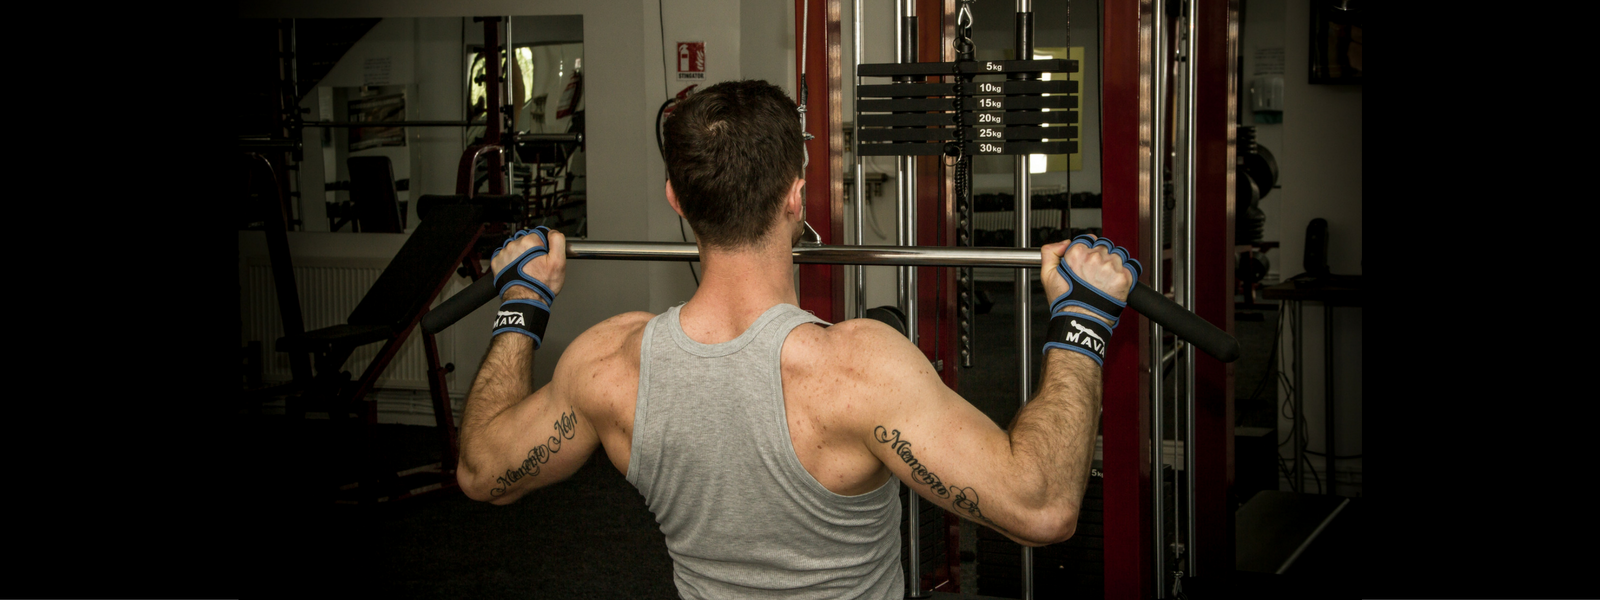 How to build big broad shoulders - 10 Best exercises for building shoulders that demand respect